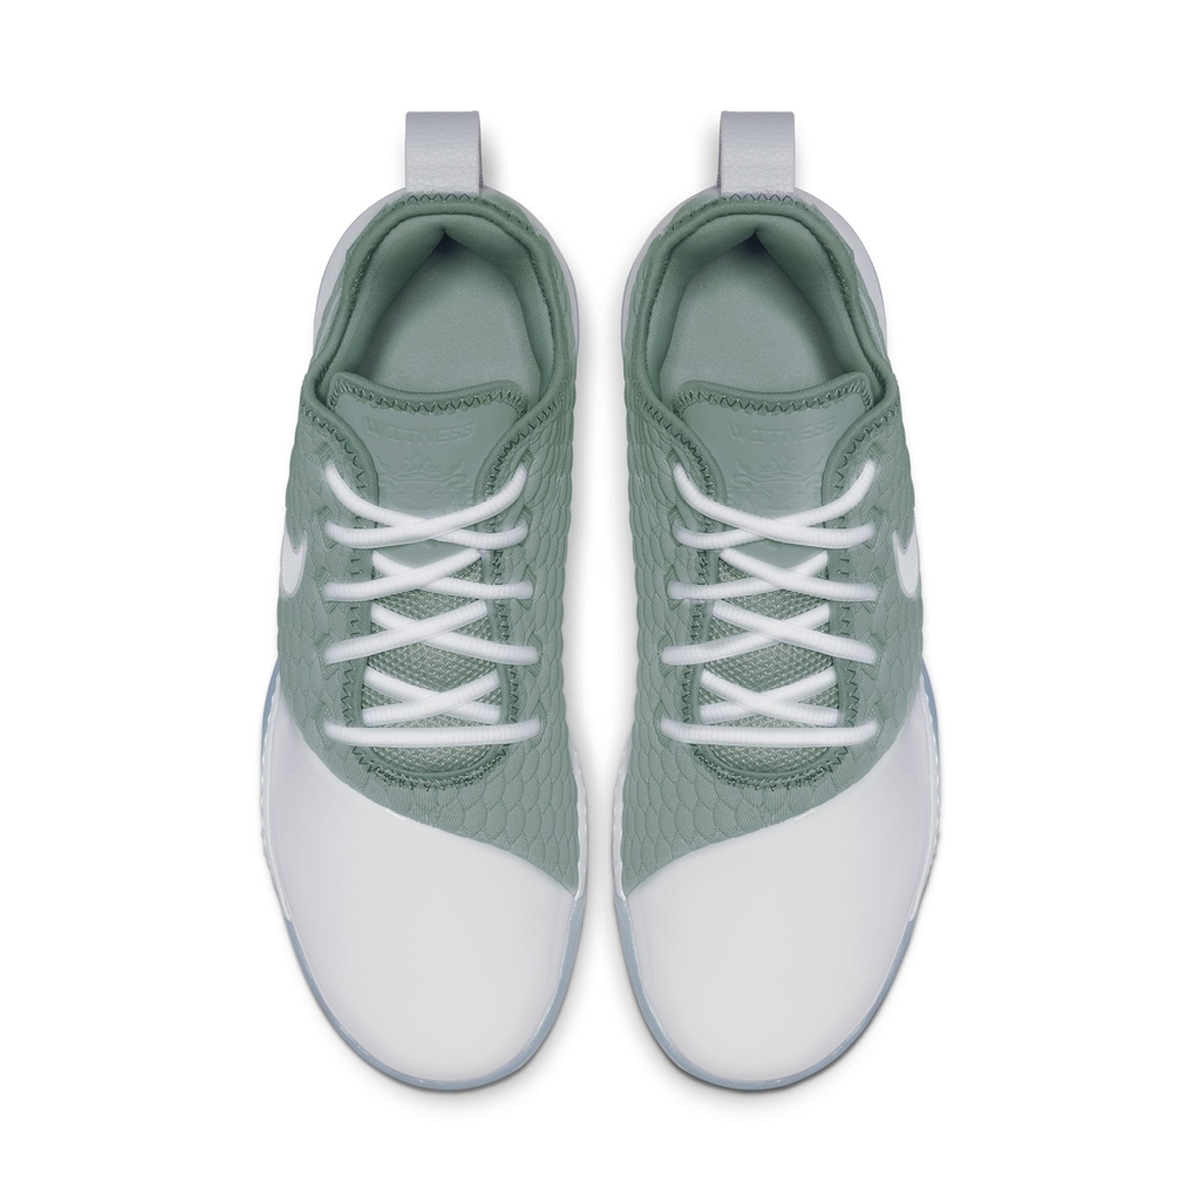 6513d9211ca Nike-LeBron-Witness-3-Patent-Leather-Cool-Grey-3 - WearTesters